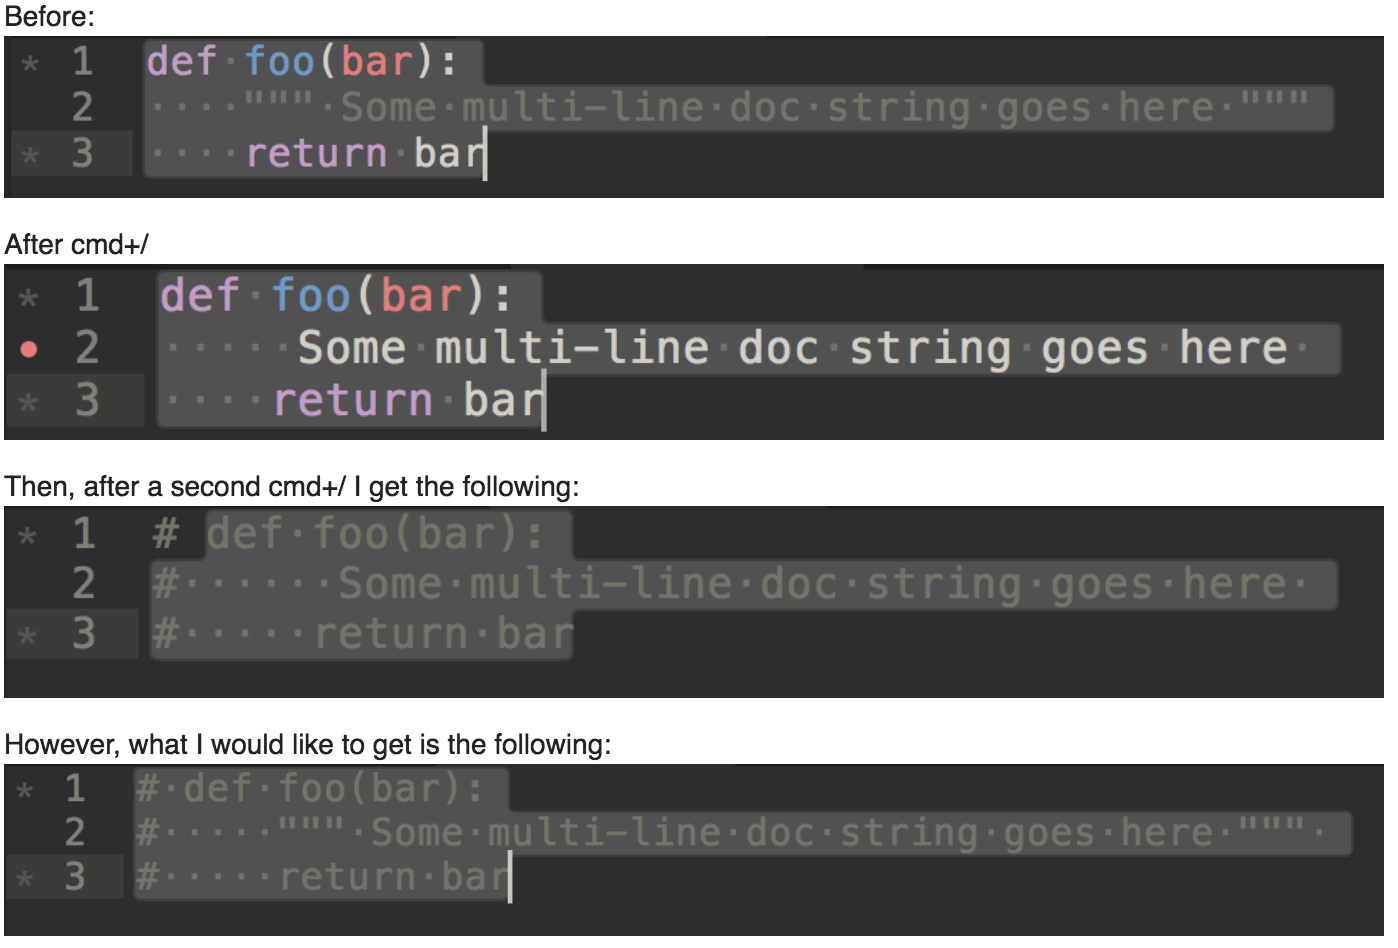 Multiline python doc string with treated as inline comment